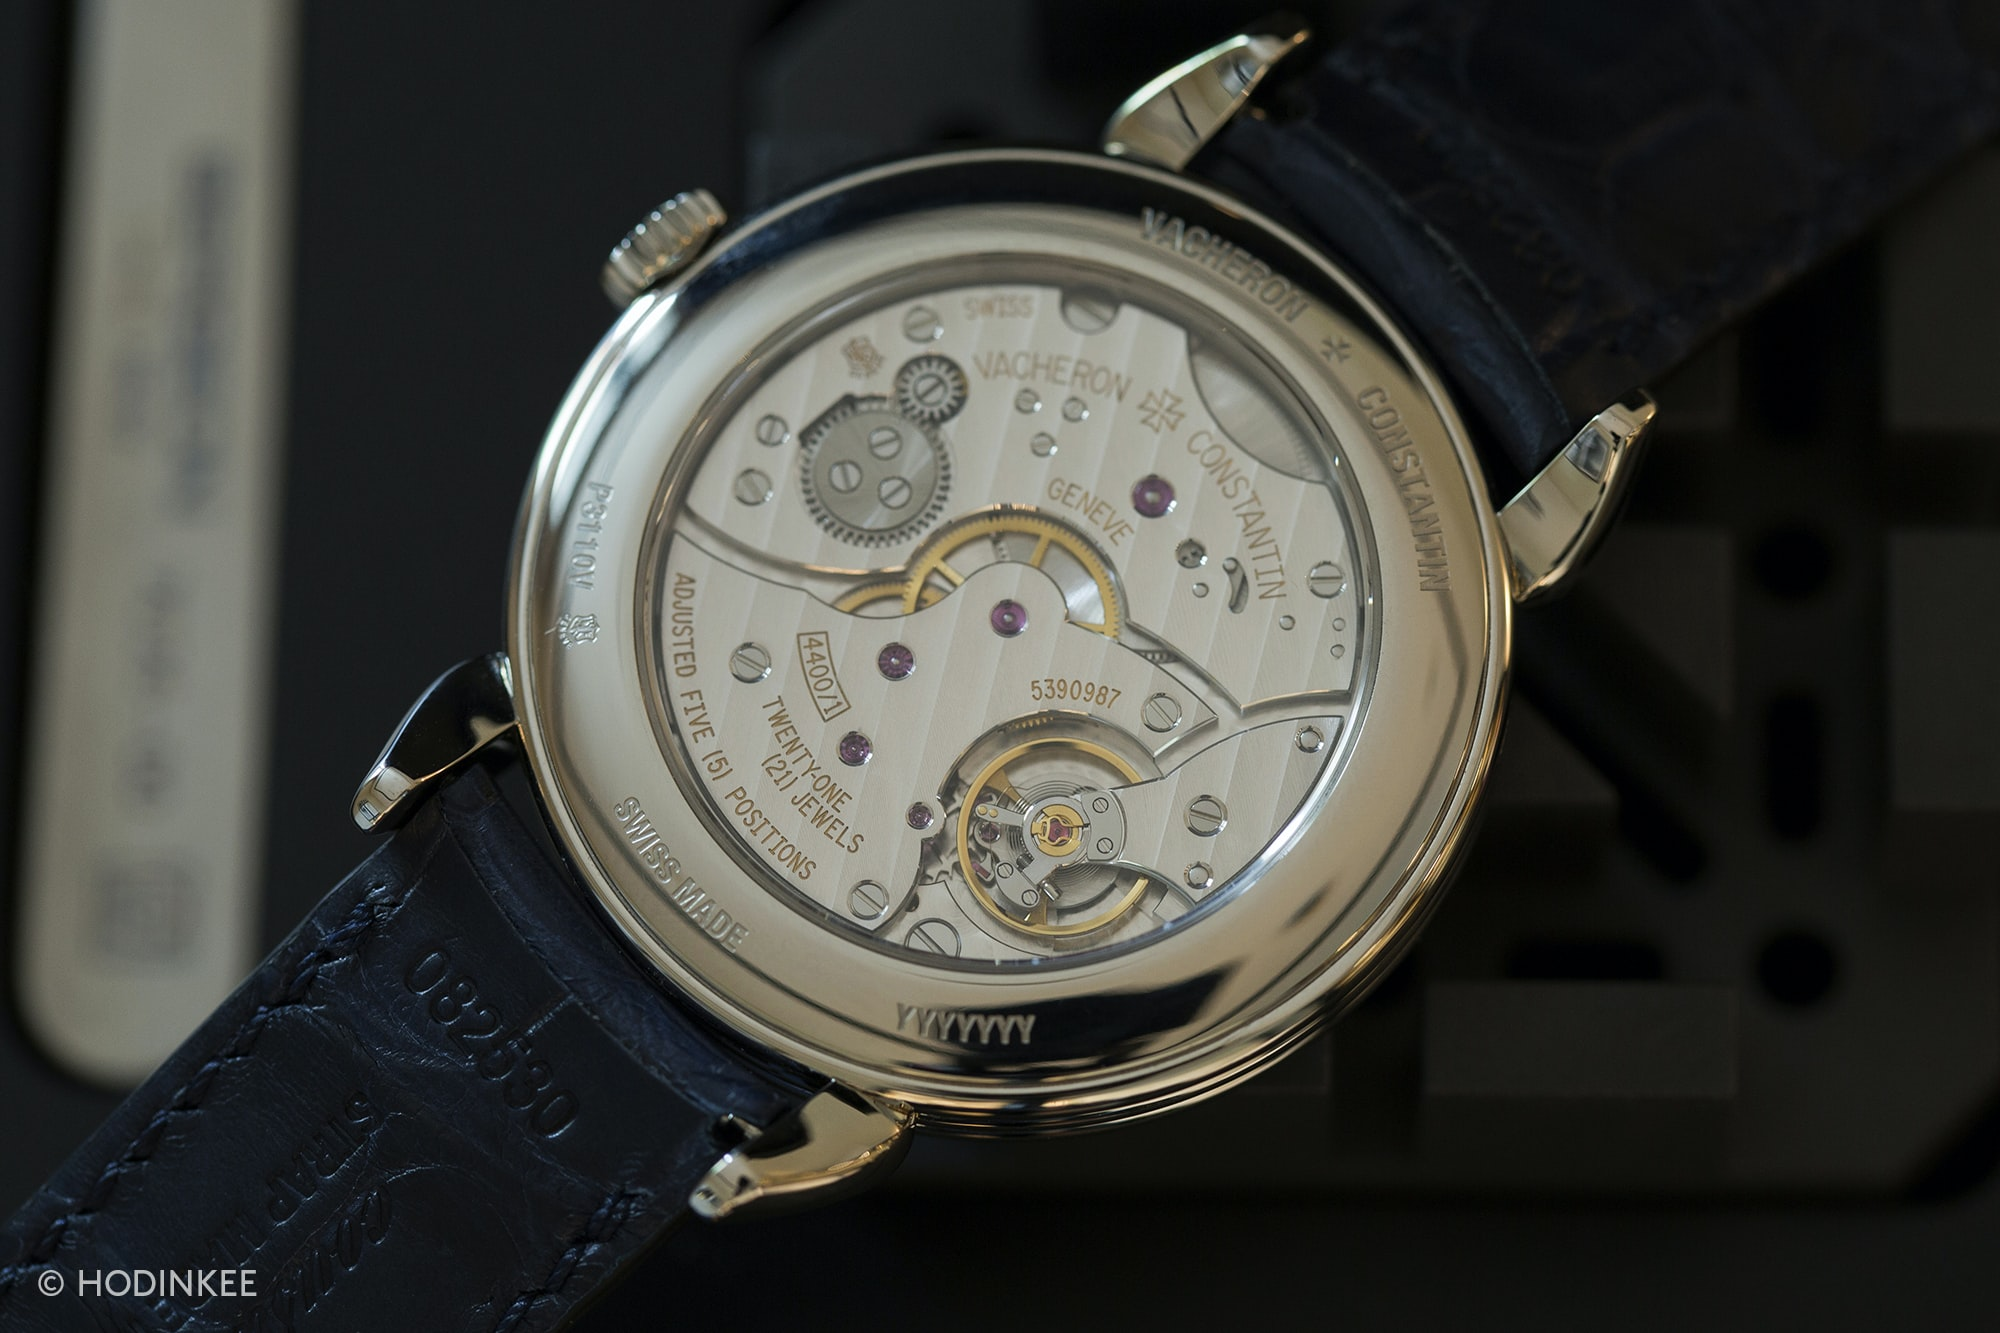 Introducing: The New Vacheron Constantin Historiques: Triple Calendrier 1942 And 1948, And American 1921 Small (Exclusive Live Pics) Introducing: The New Vacheron Constantin Historiques: Triple Calendrier 1942 And 1948, And American 1921 Small (Exclusive Live Pics) 3H0A2911 copy